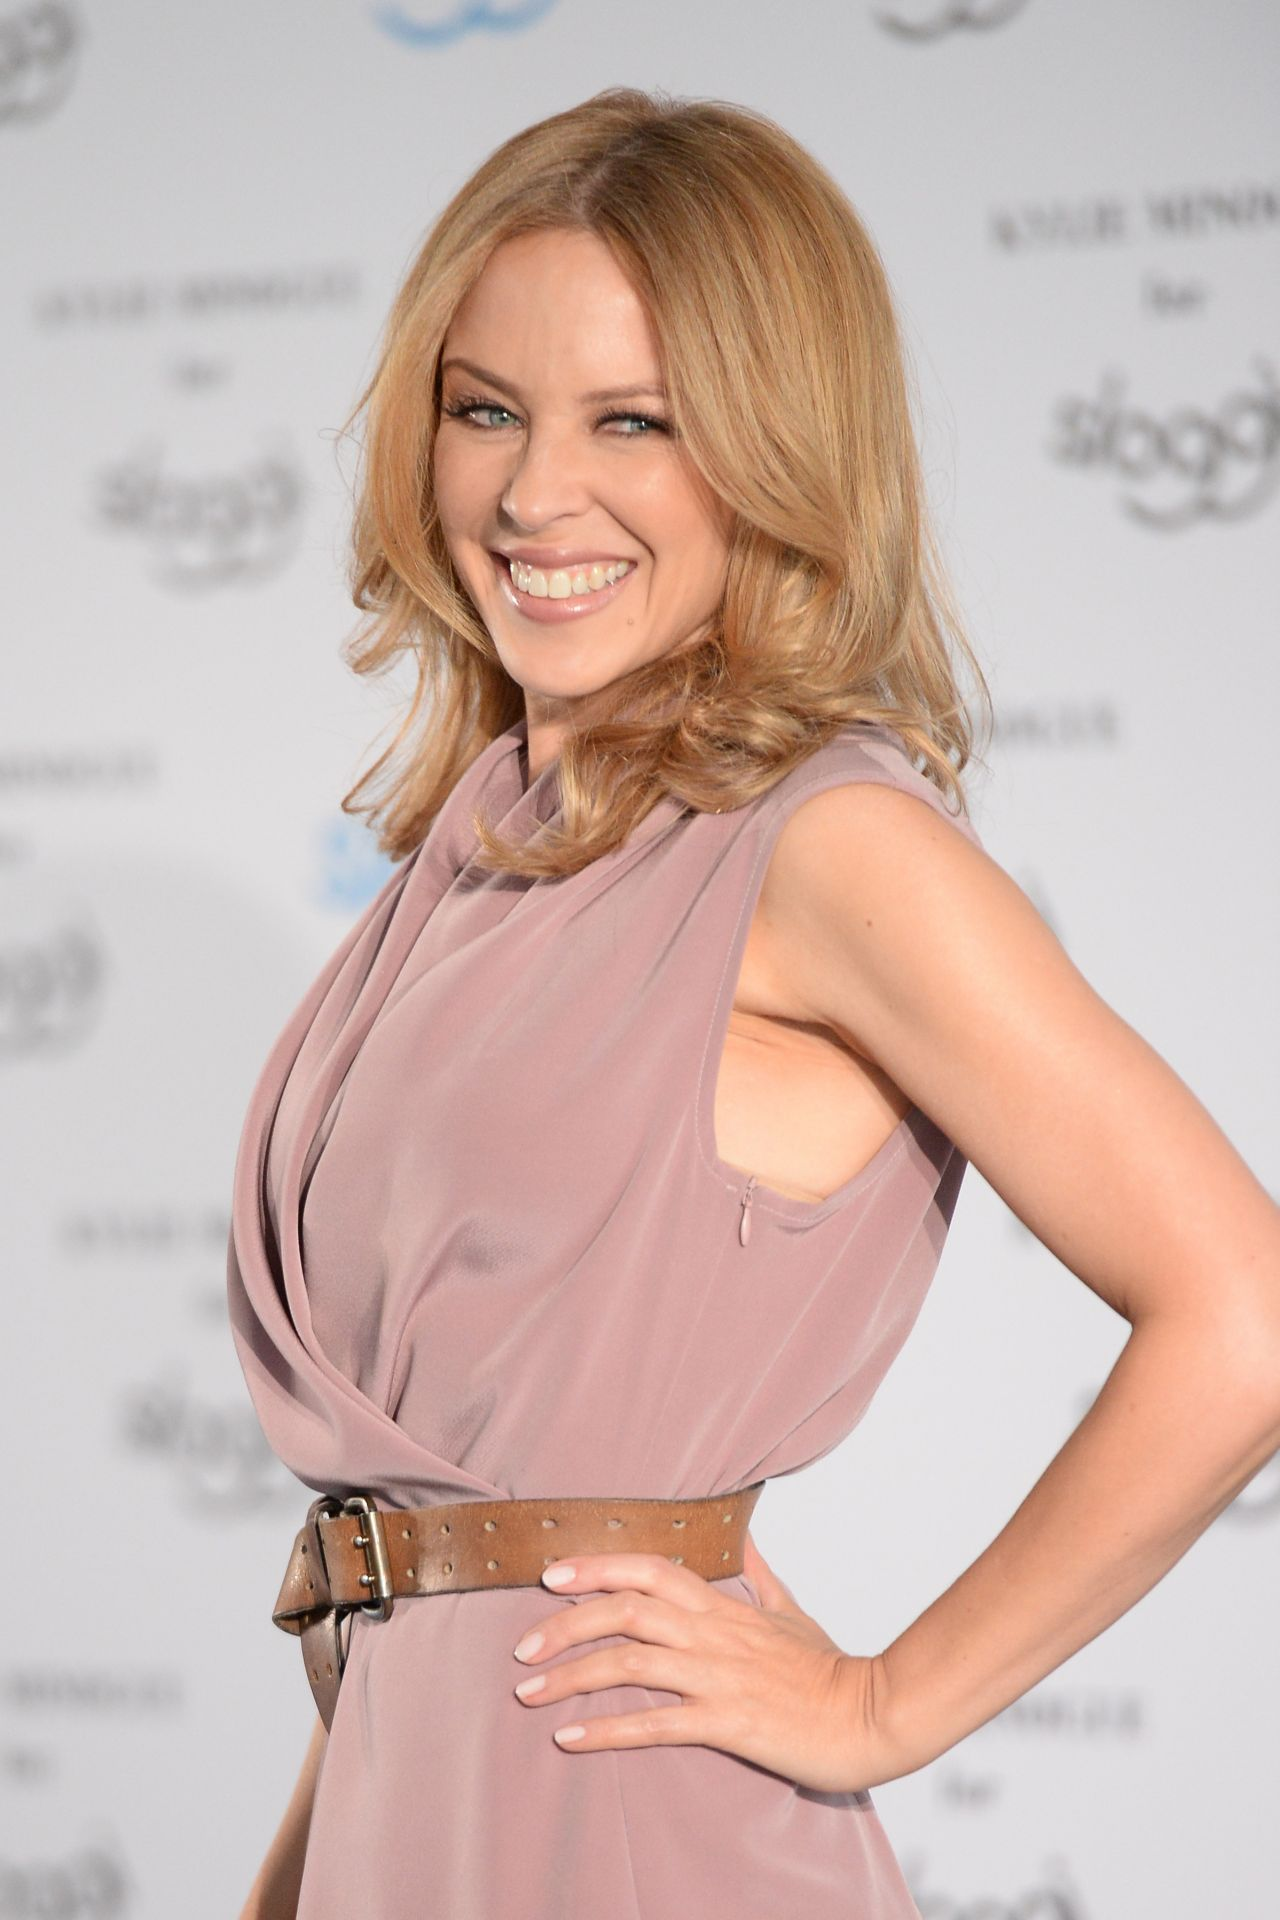 Kylie Minogue Sloggi Lingerie Q Amp A In Berlin April 2015